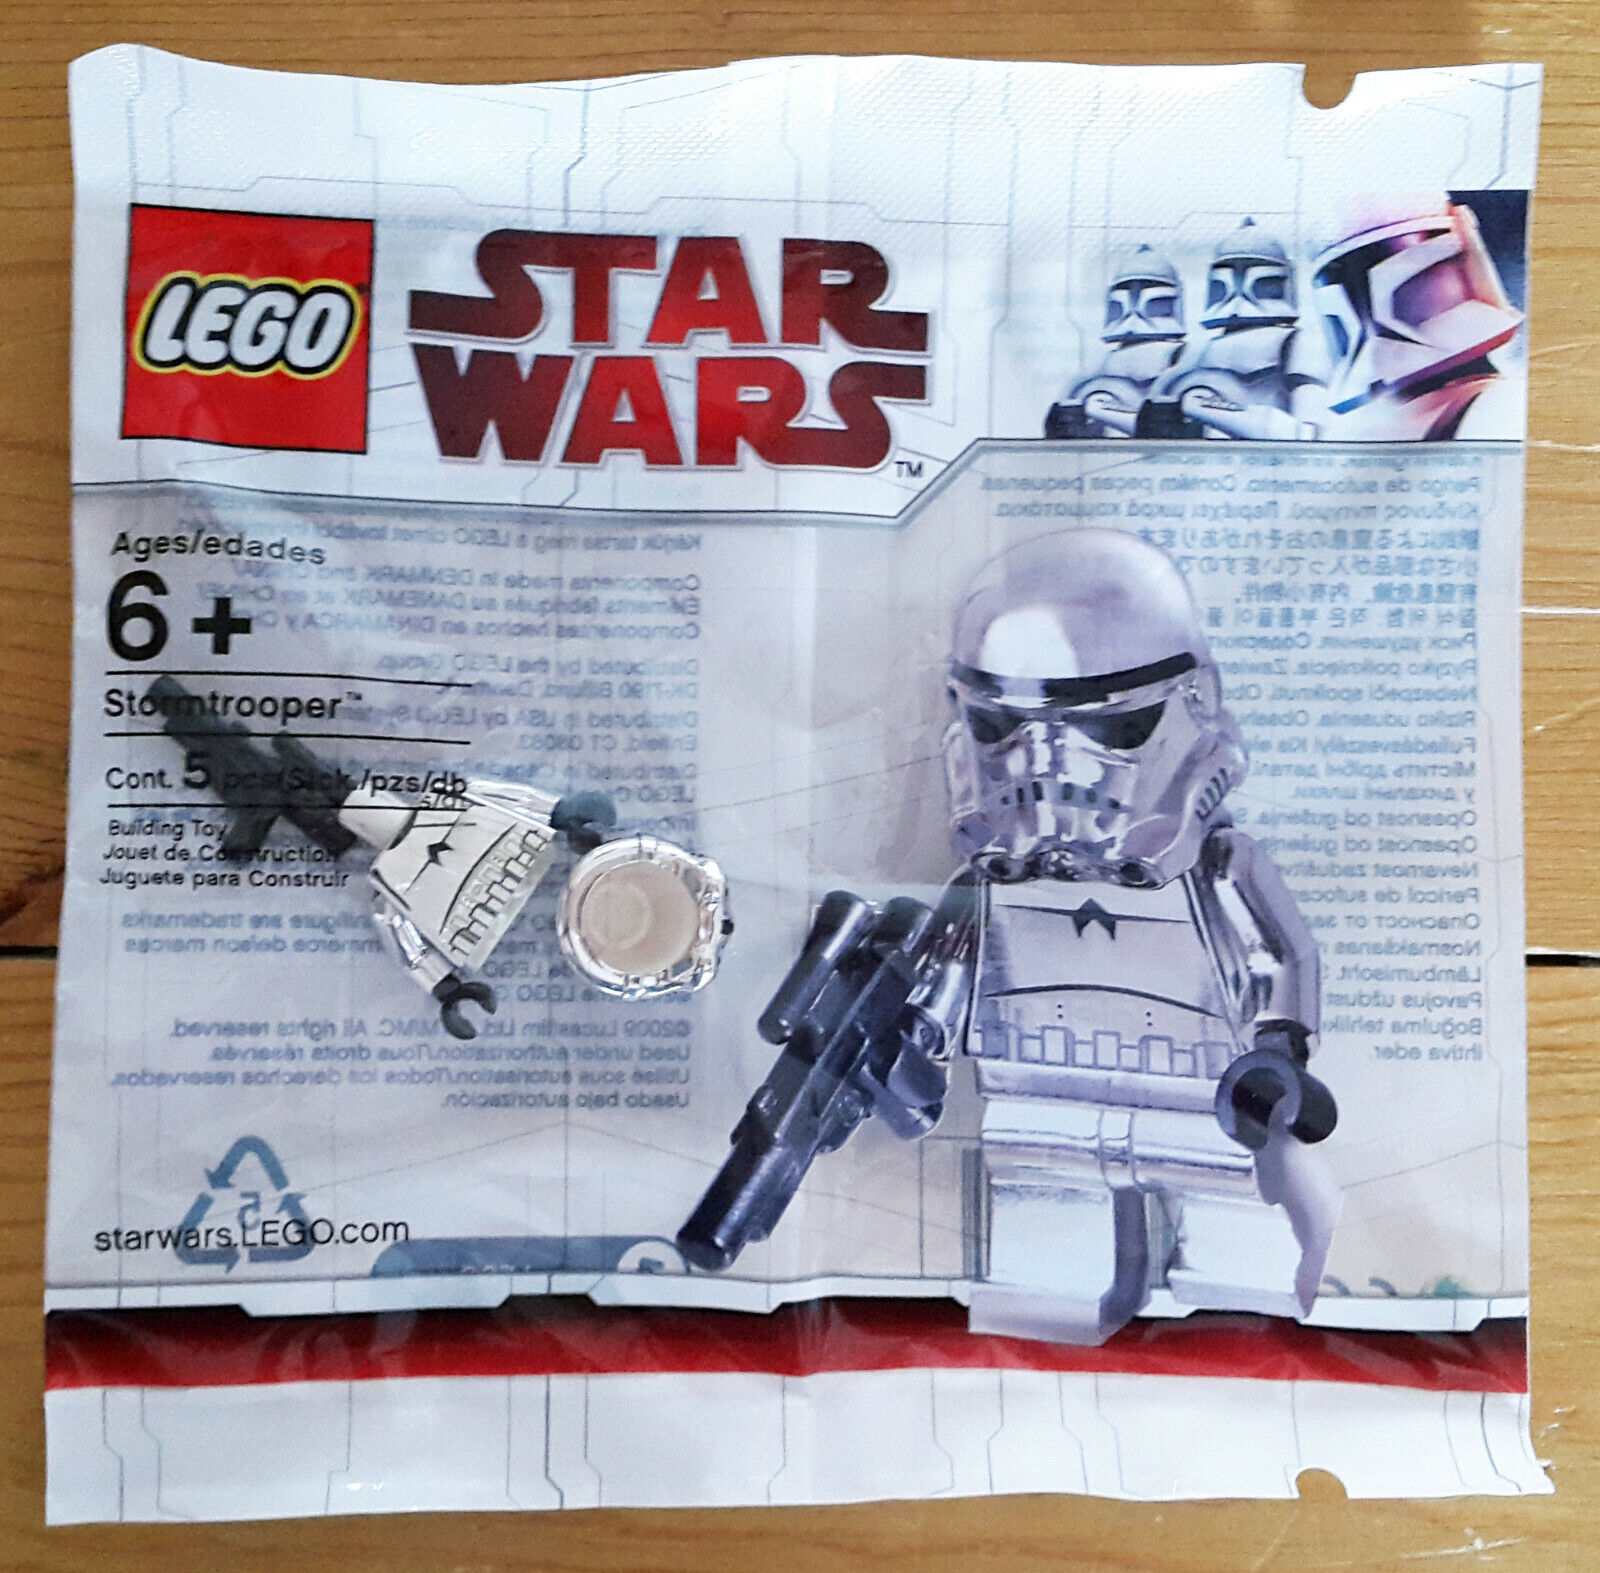 LEGO Star Wars Chrome Stormtrooper Polybag 2853590 4591726 New, Sealed- Perfect